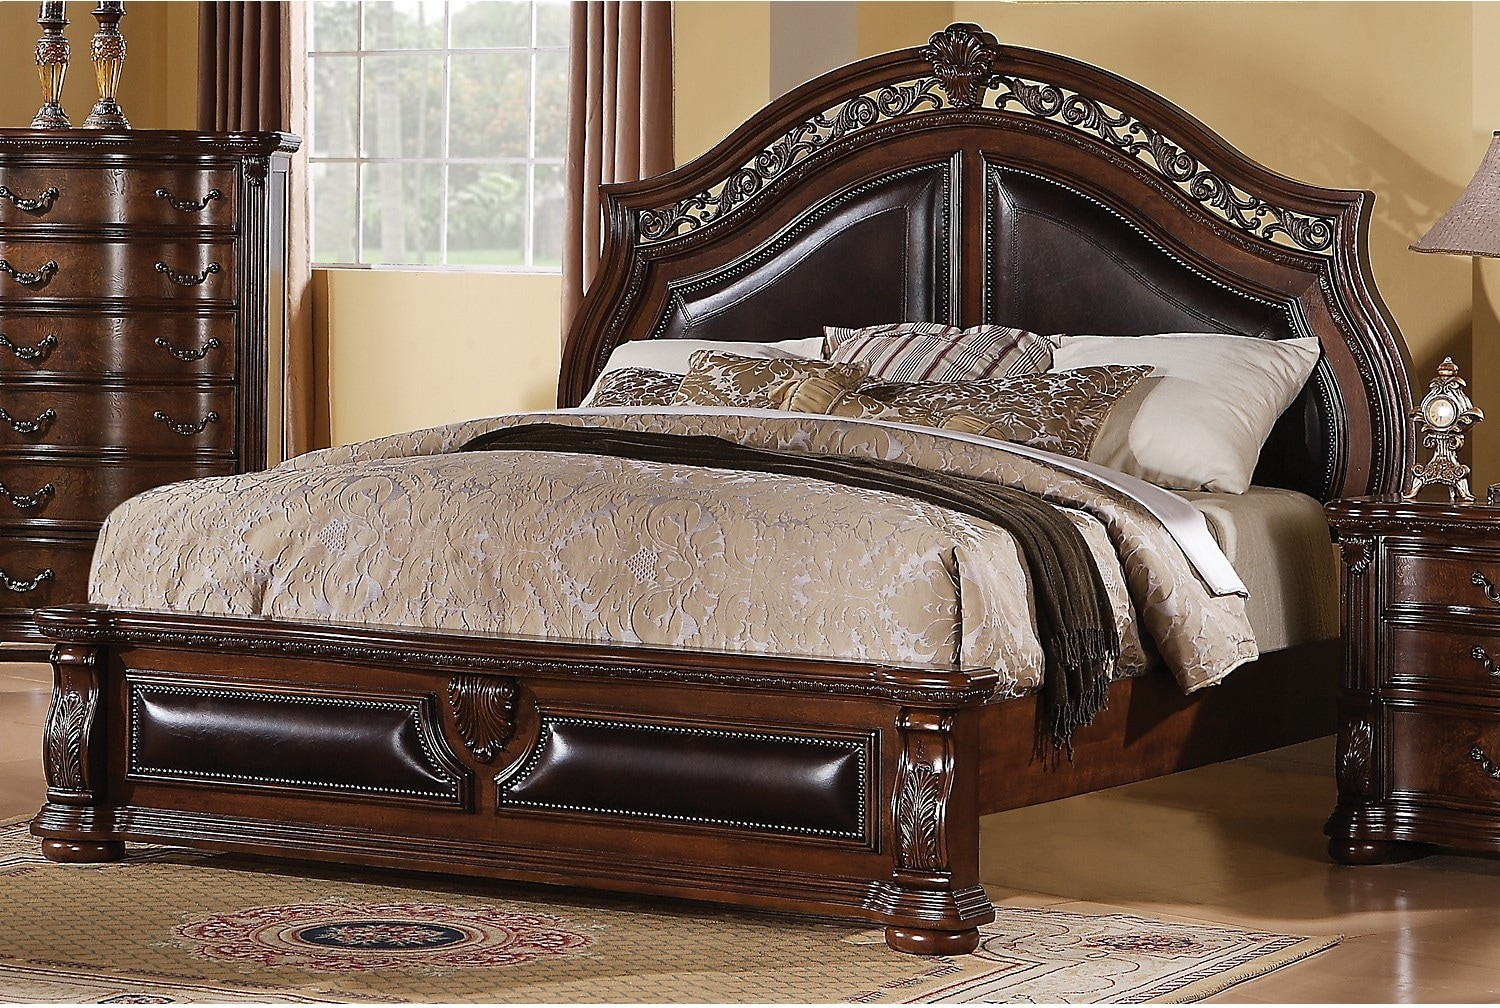 Morocco king bed the brick for King bed sets furniture